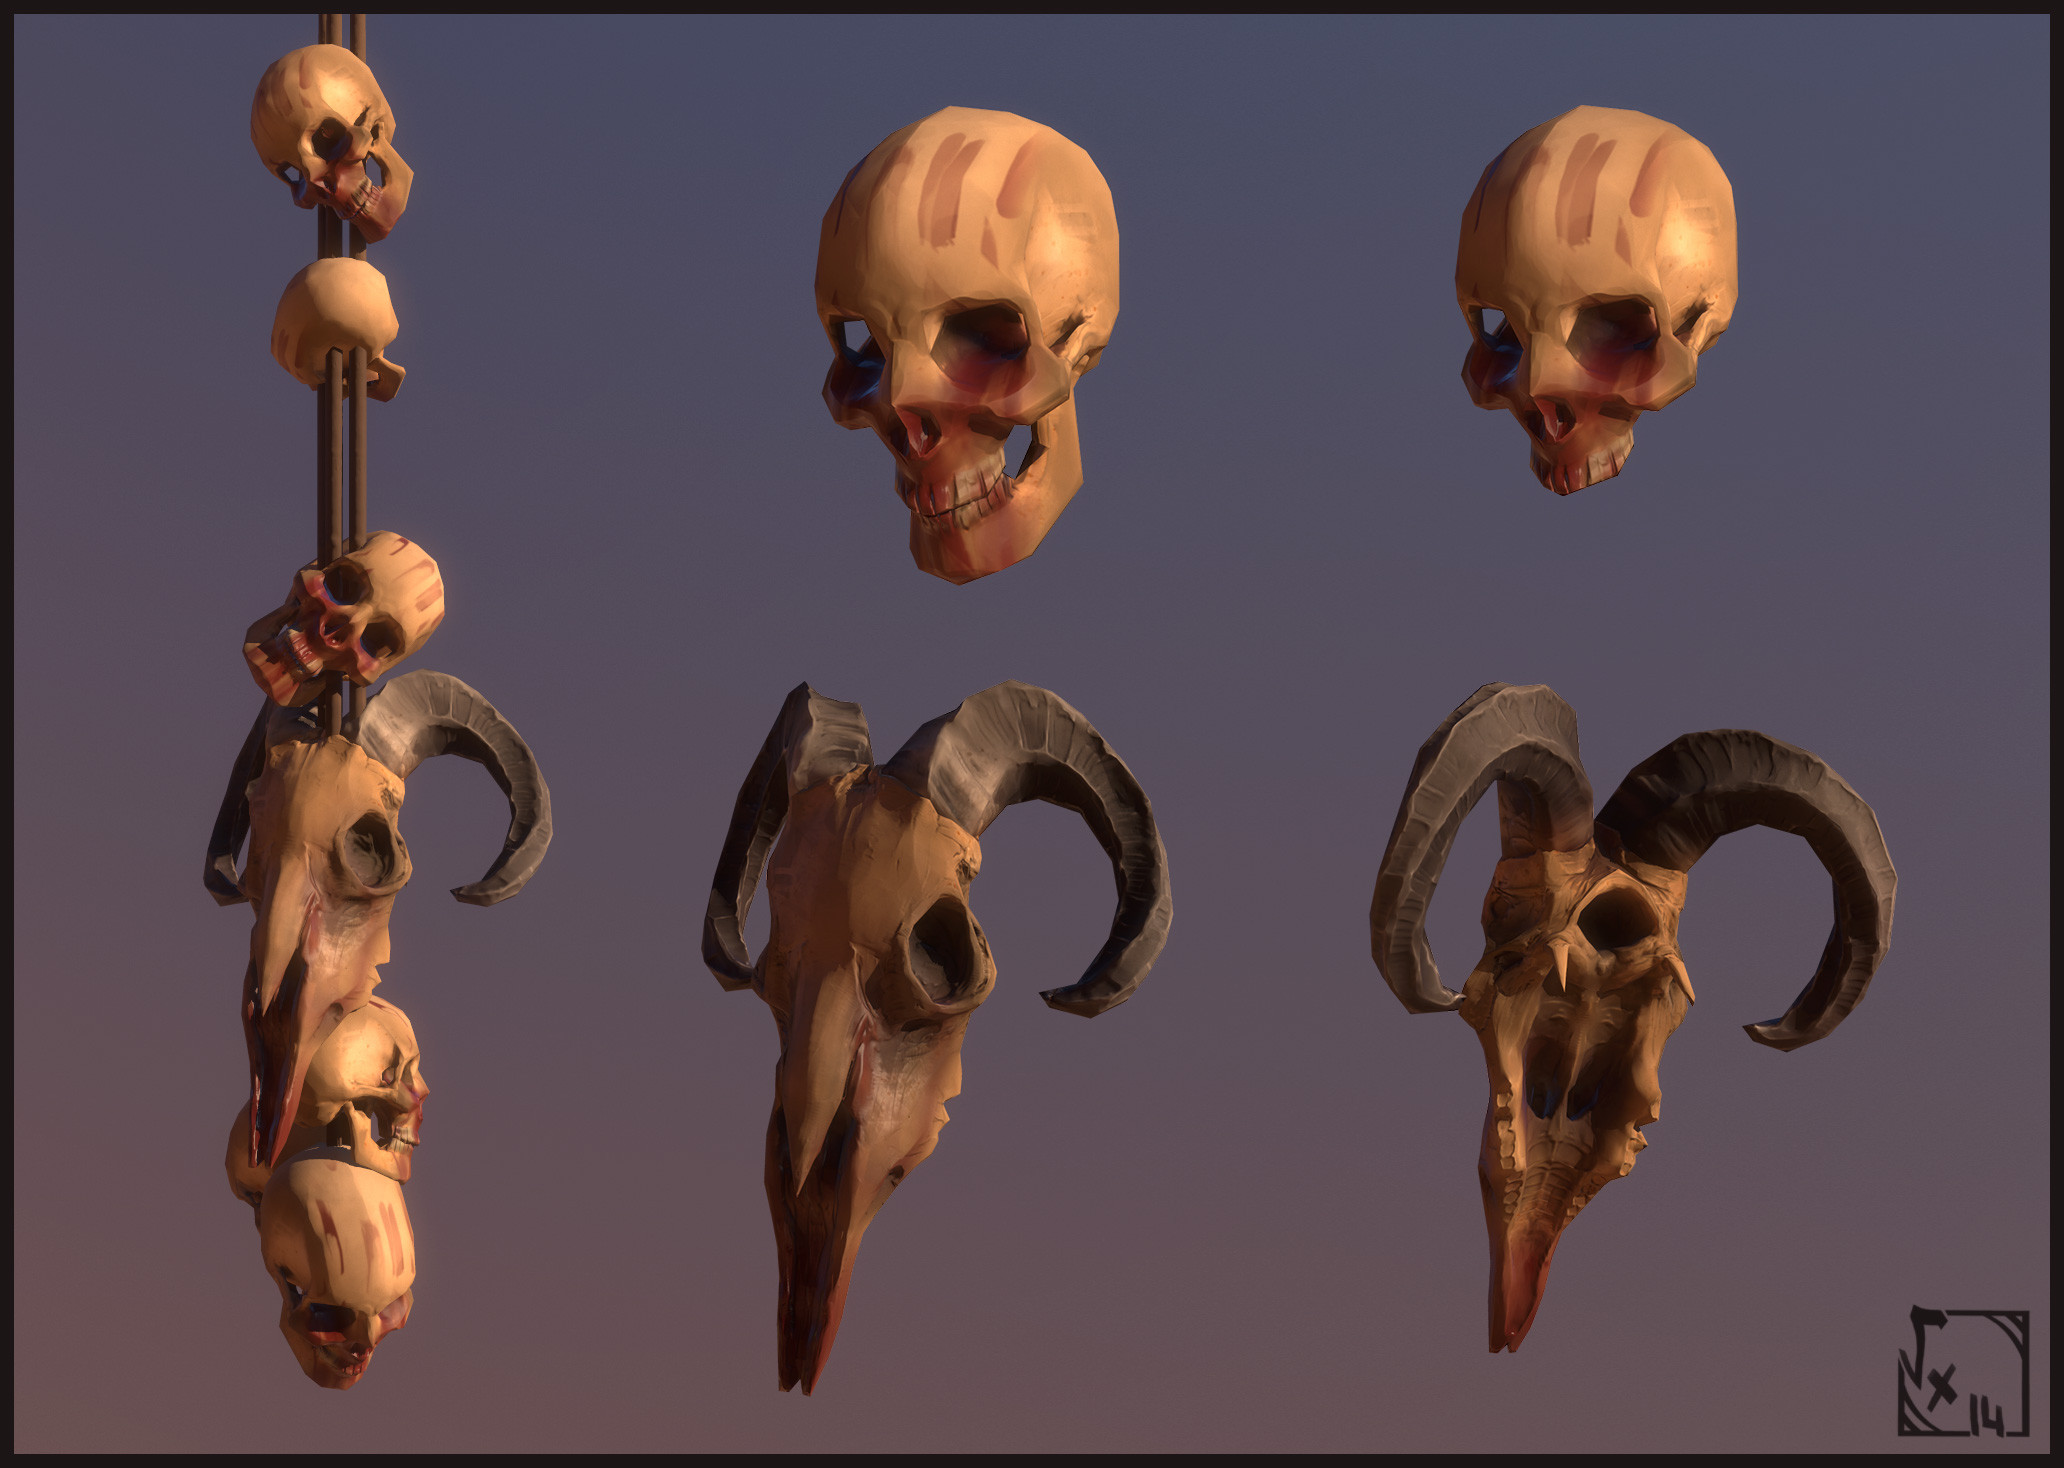 Skulls - Used to add creepy modd on some parts, and at a time they were used as physical assets which you can interact with by shooting them